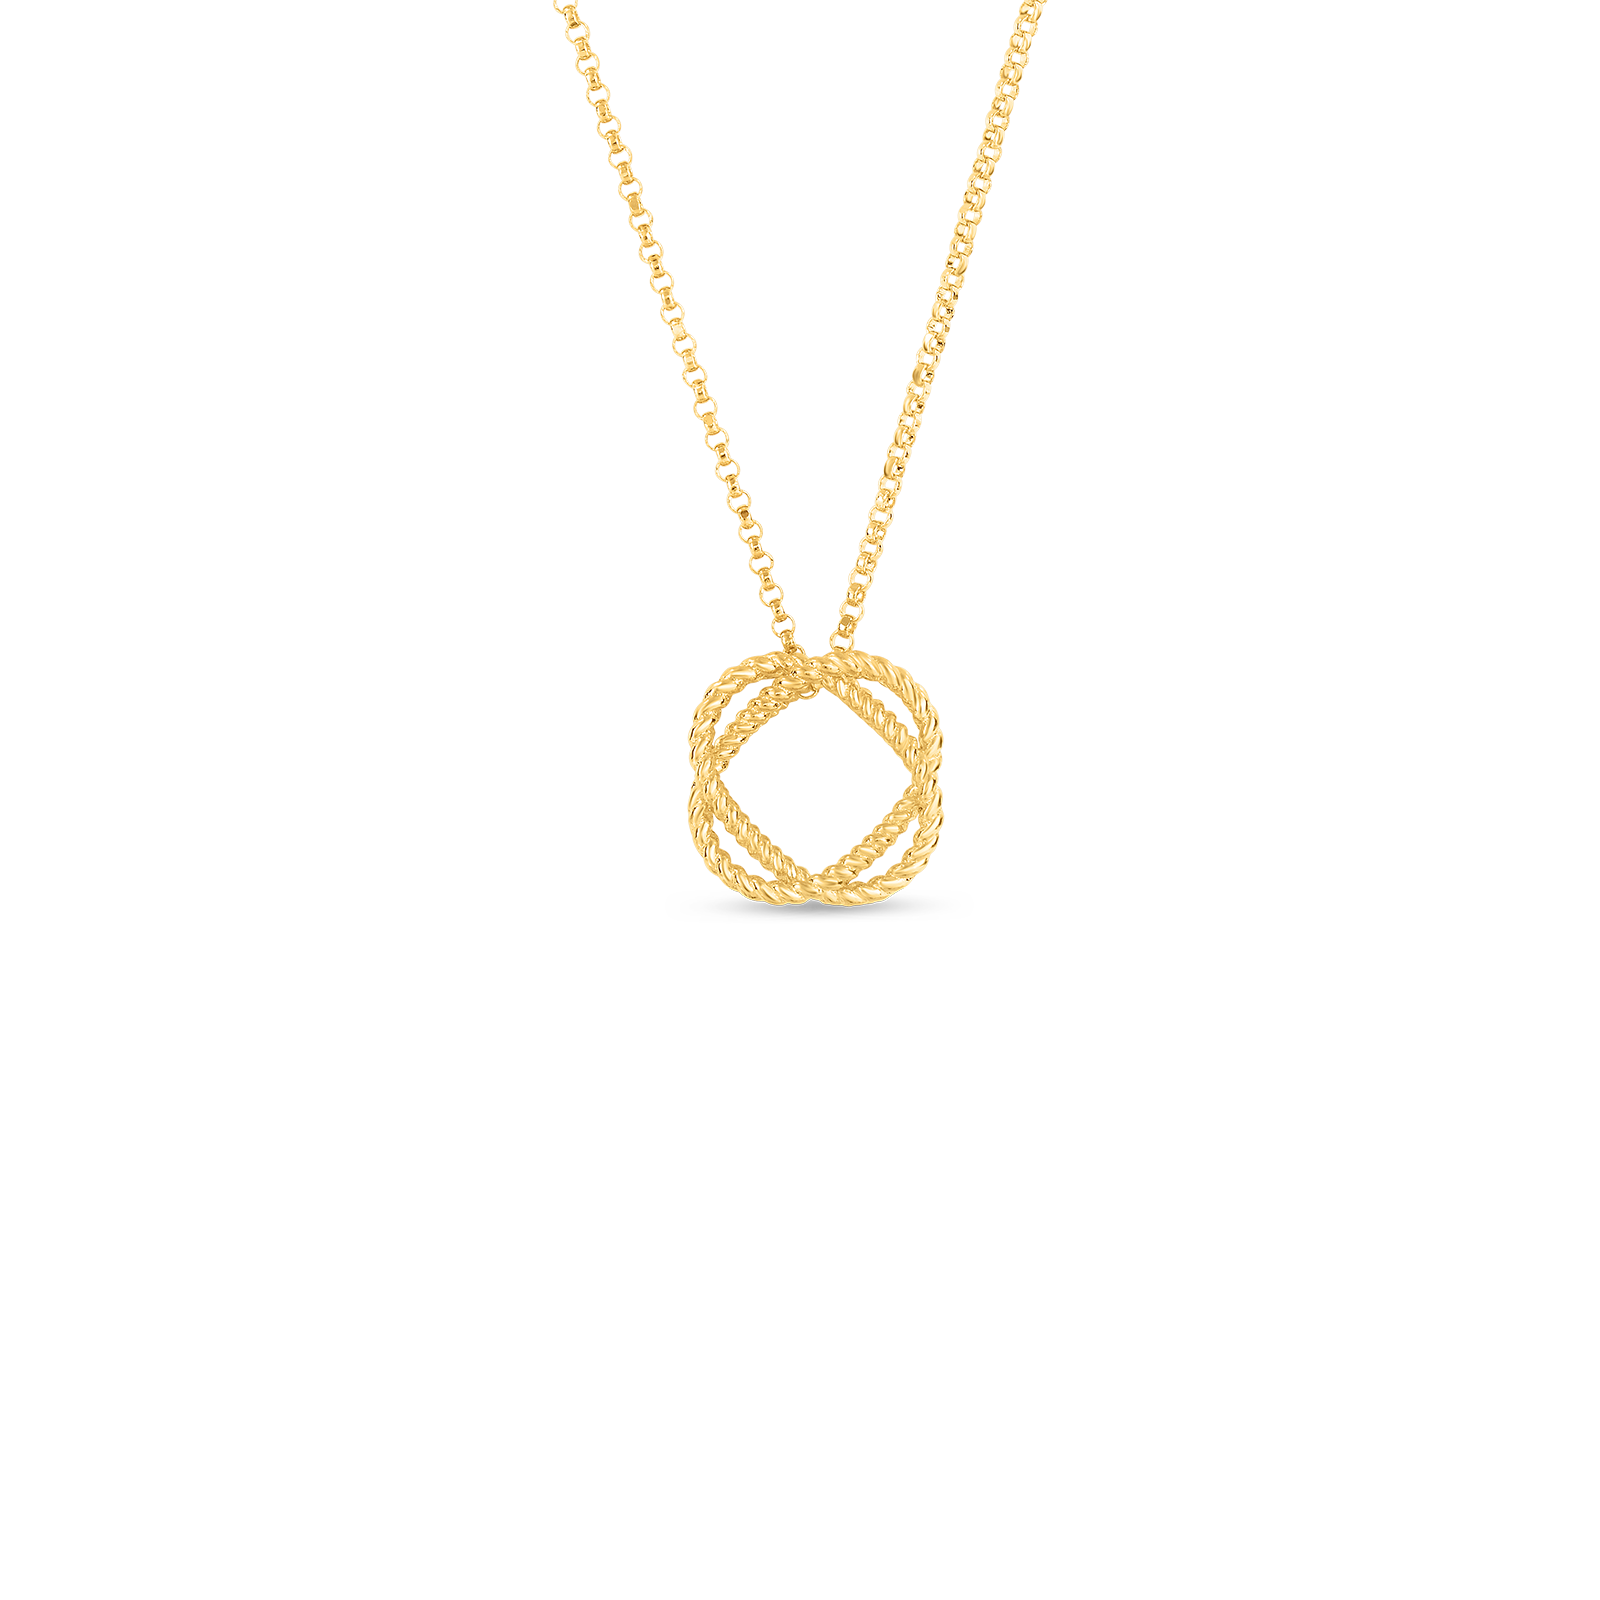 Roberto coin new barocco jewelry collection official us website new baroccocircle pendant aloadofball Choice Image